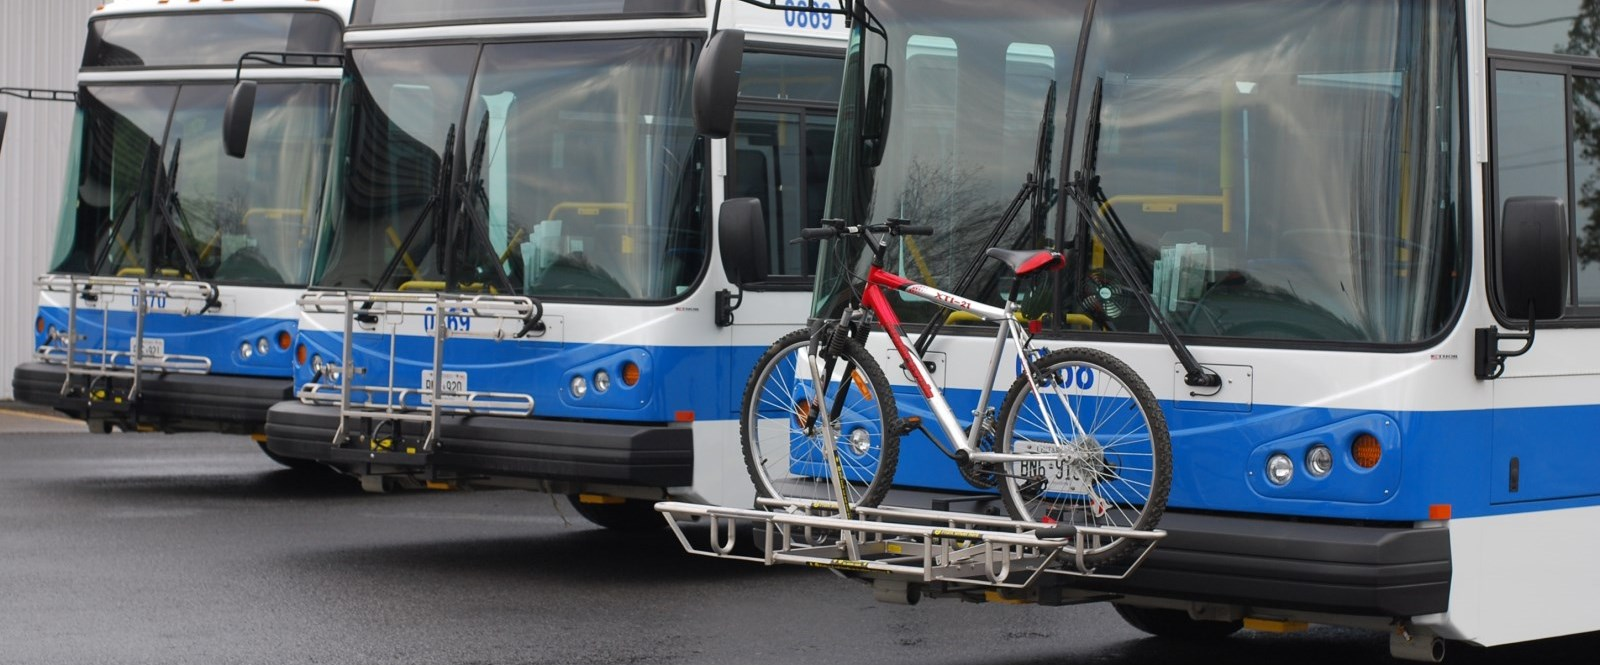 Cornwall Three buses lined up with bike racks